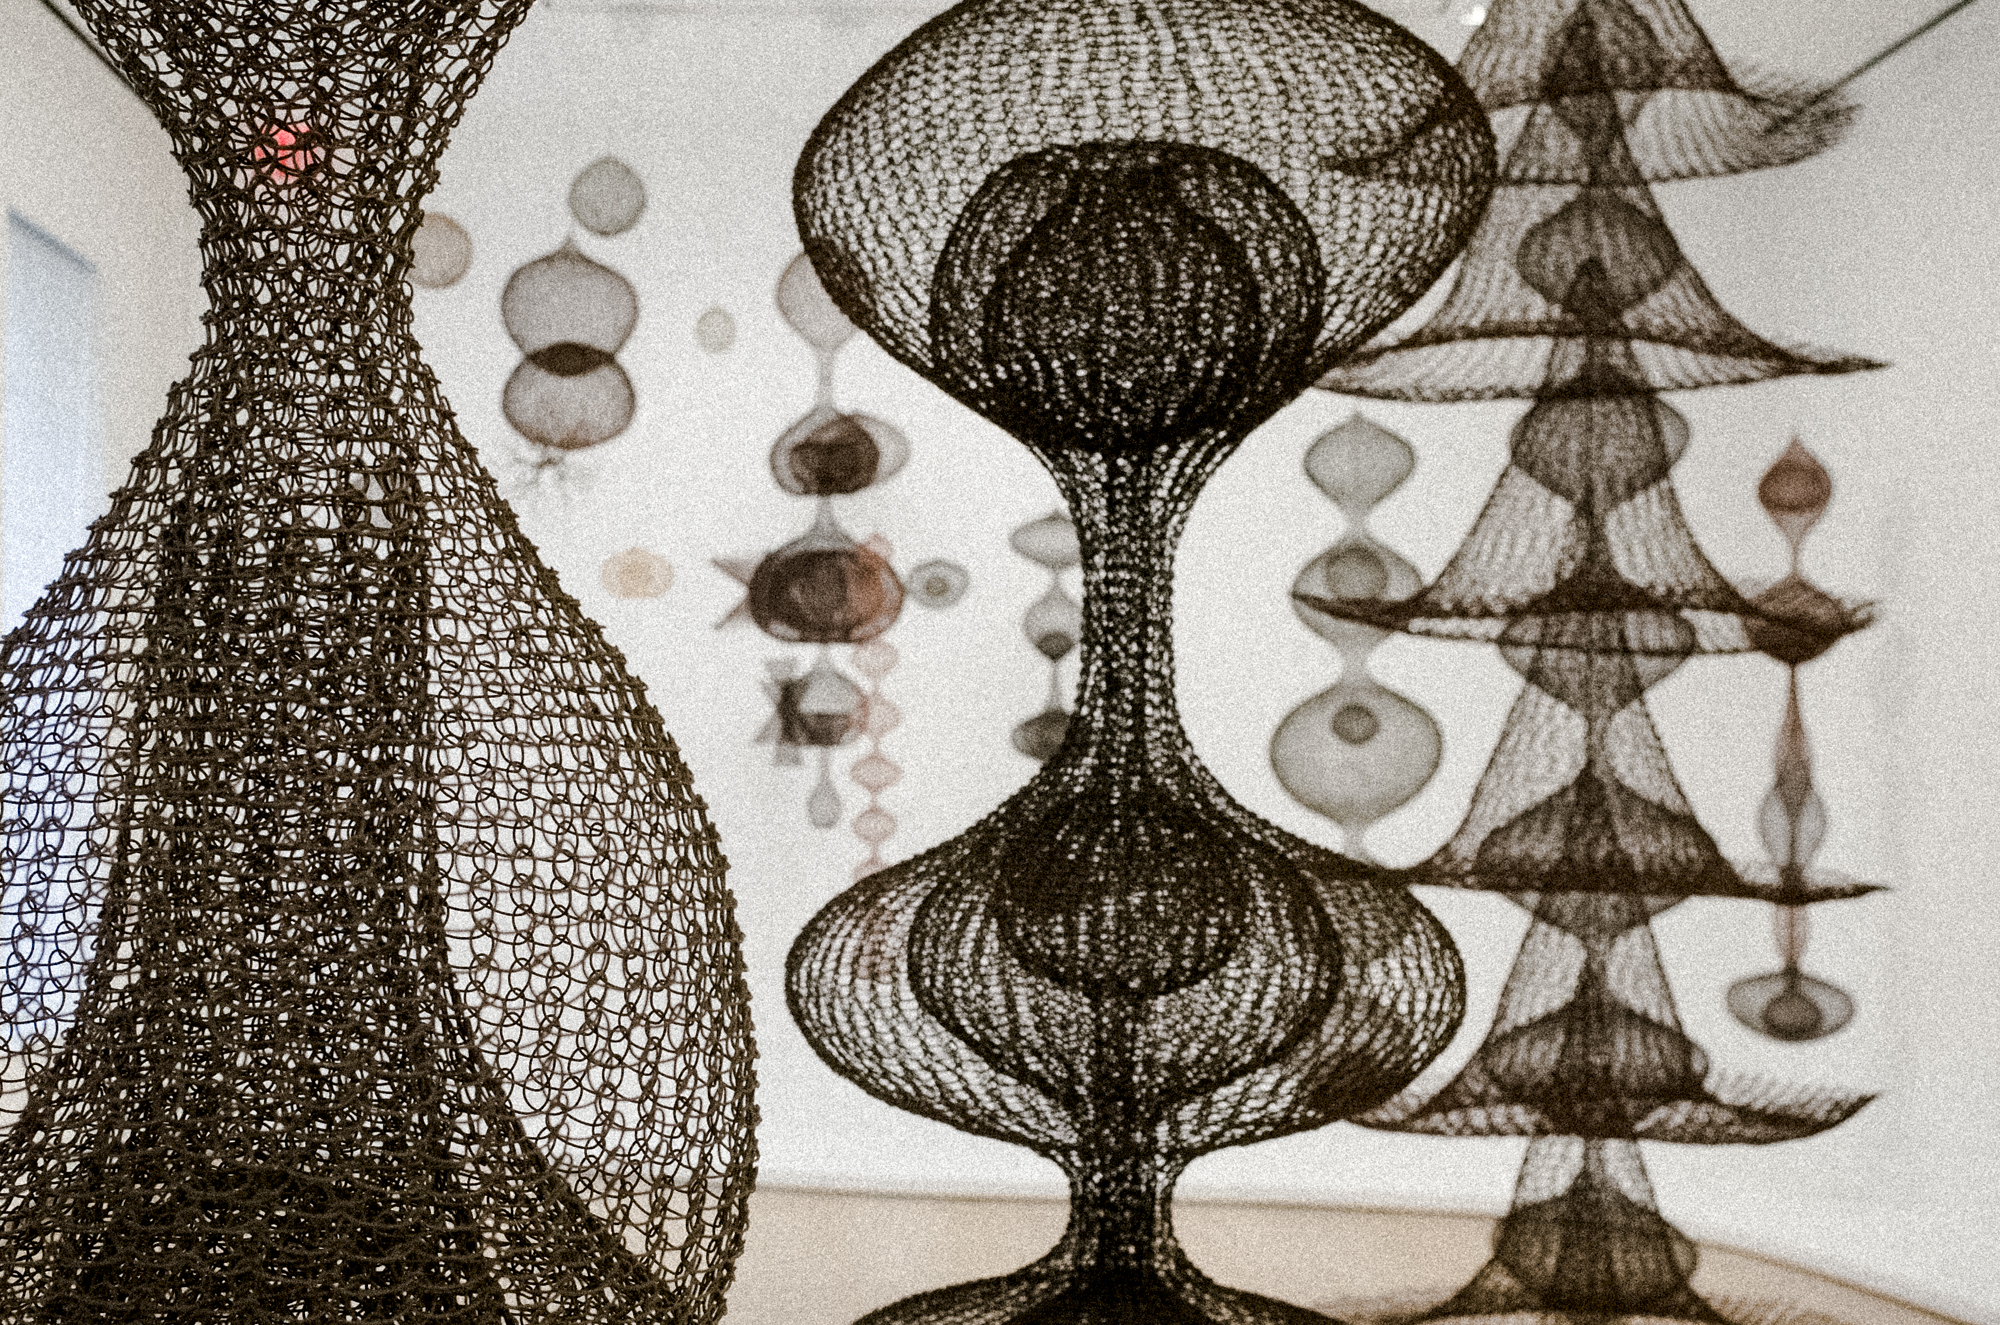 Ruth Asawa at the David Zwirner